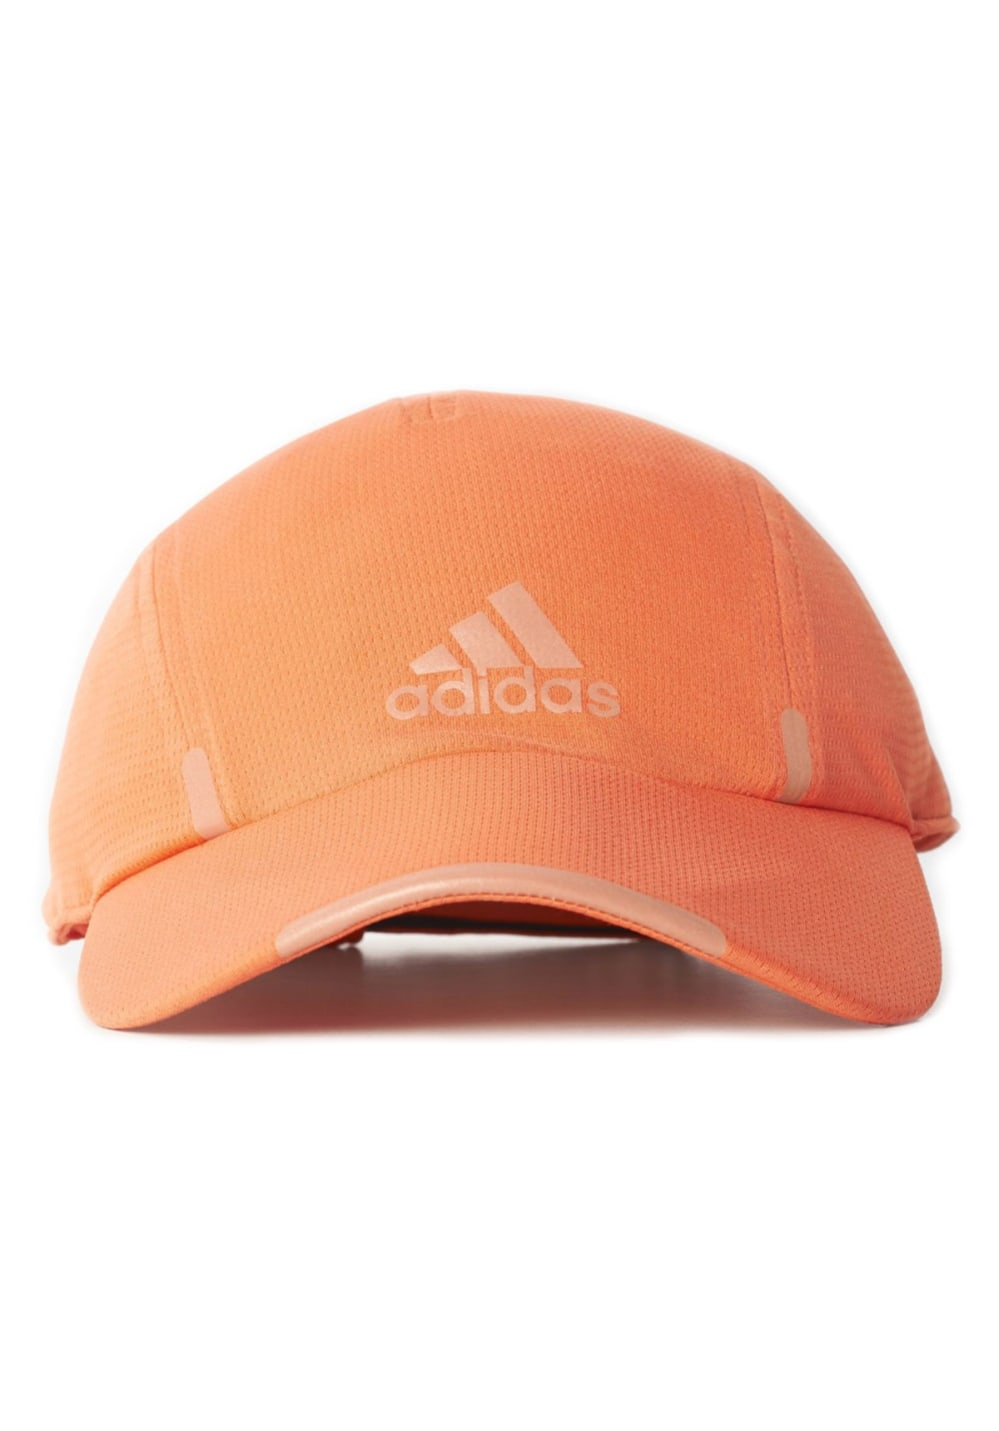 sports shoes cd180 aab8c adidas Climacool Running Cap - Gorros, gorras etc... - Naranja